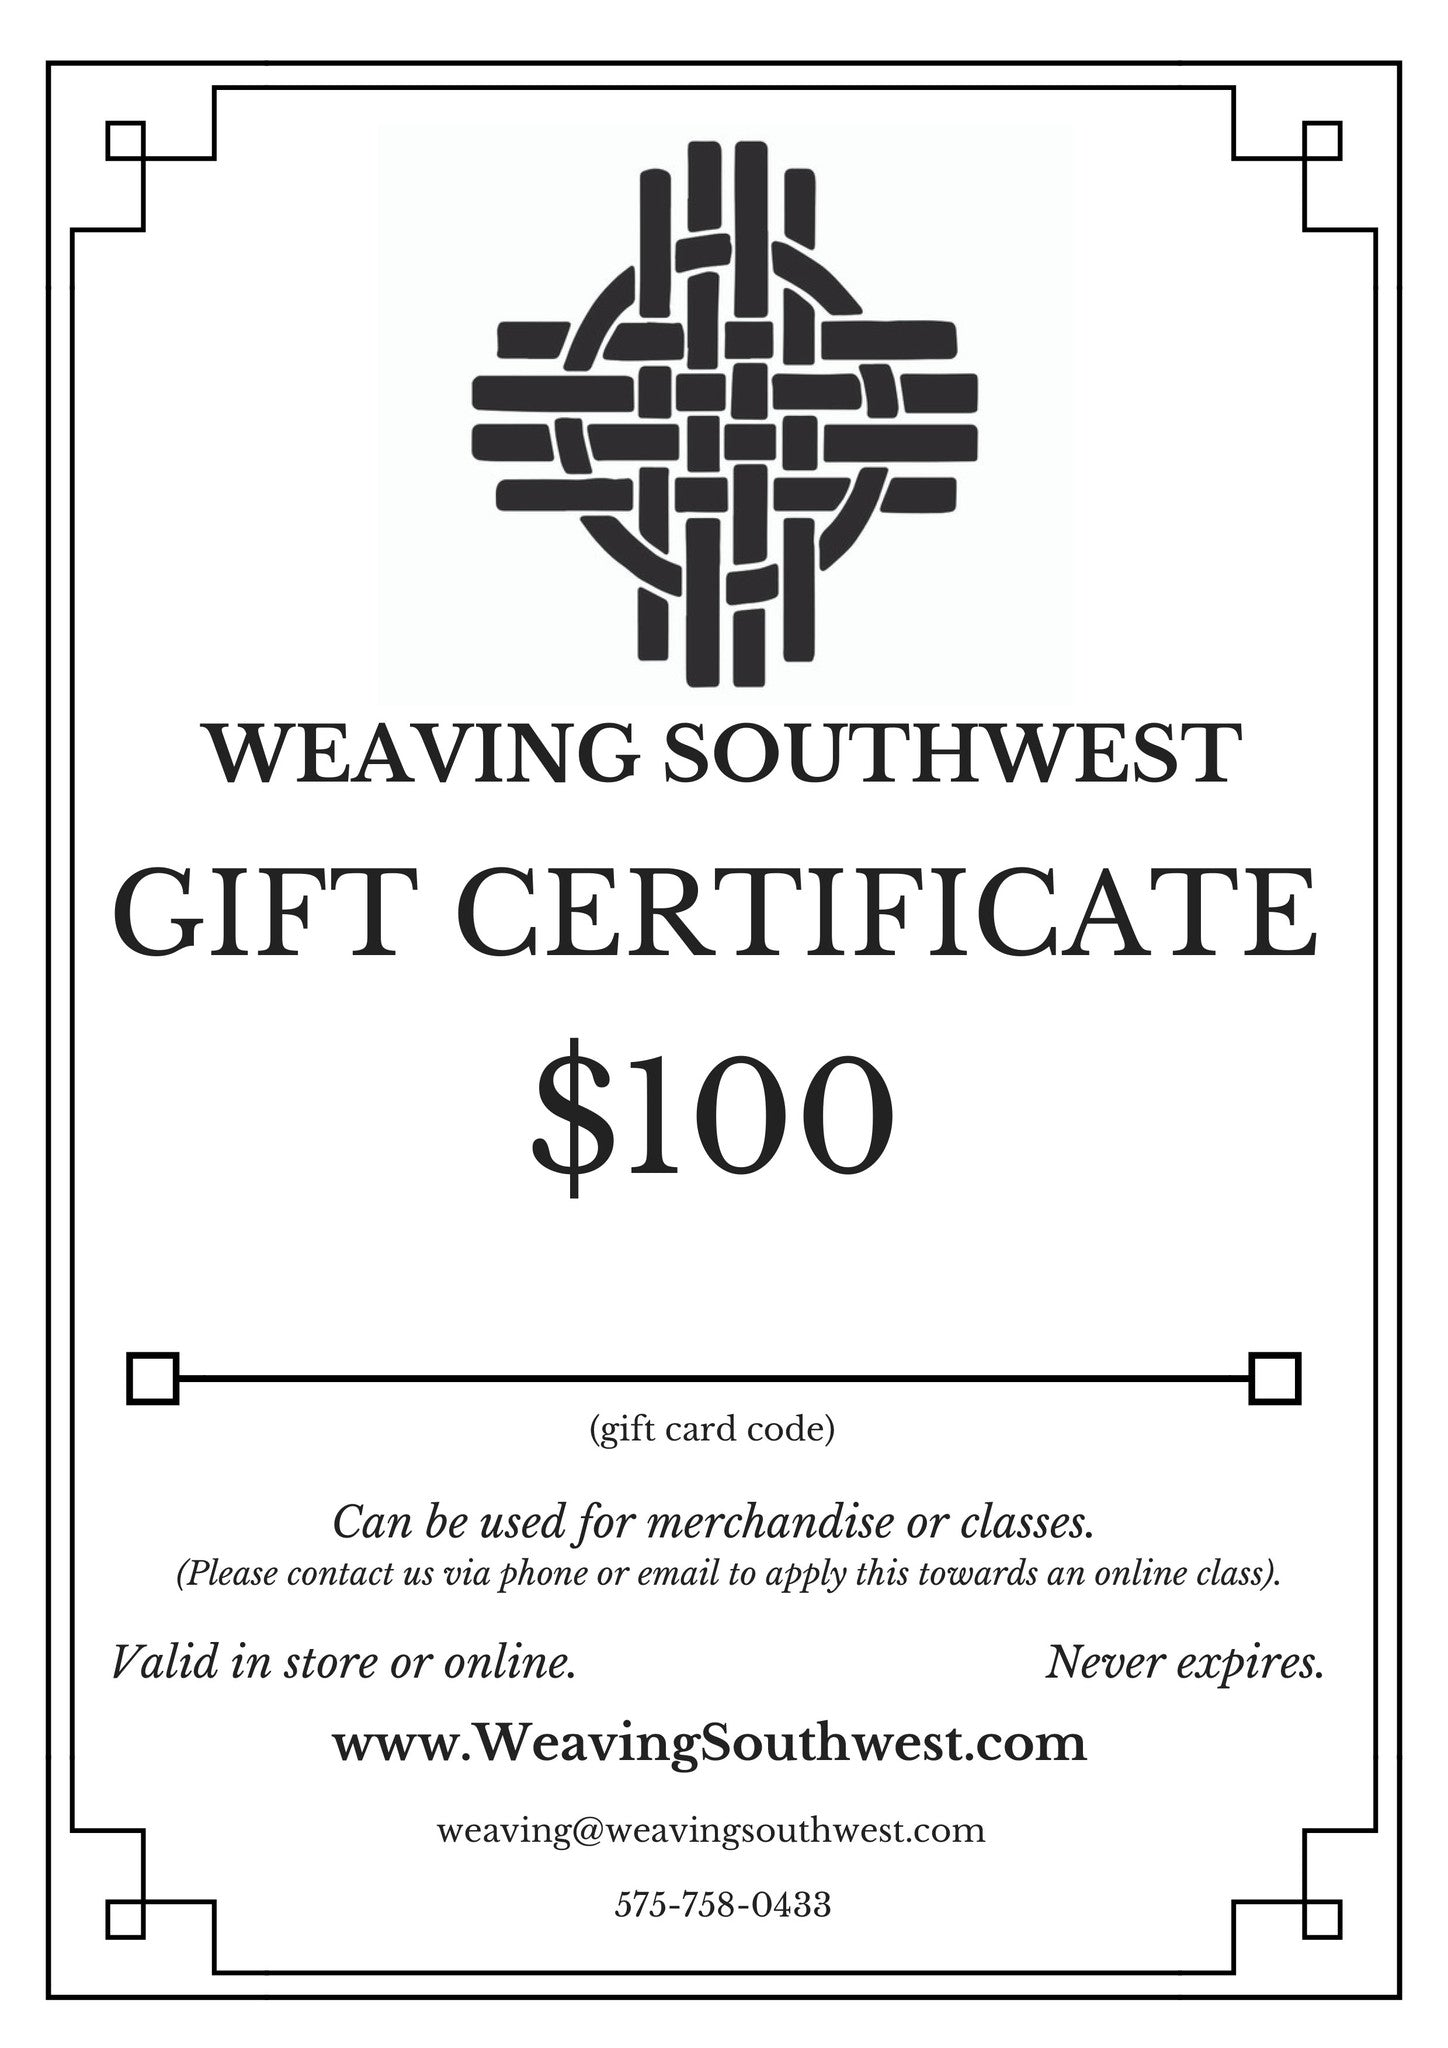 Gift card weaving southwest gift card 1betcityfo Gallery